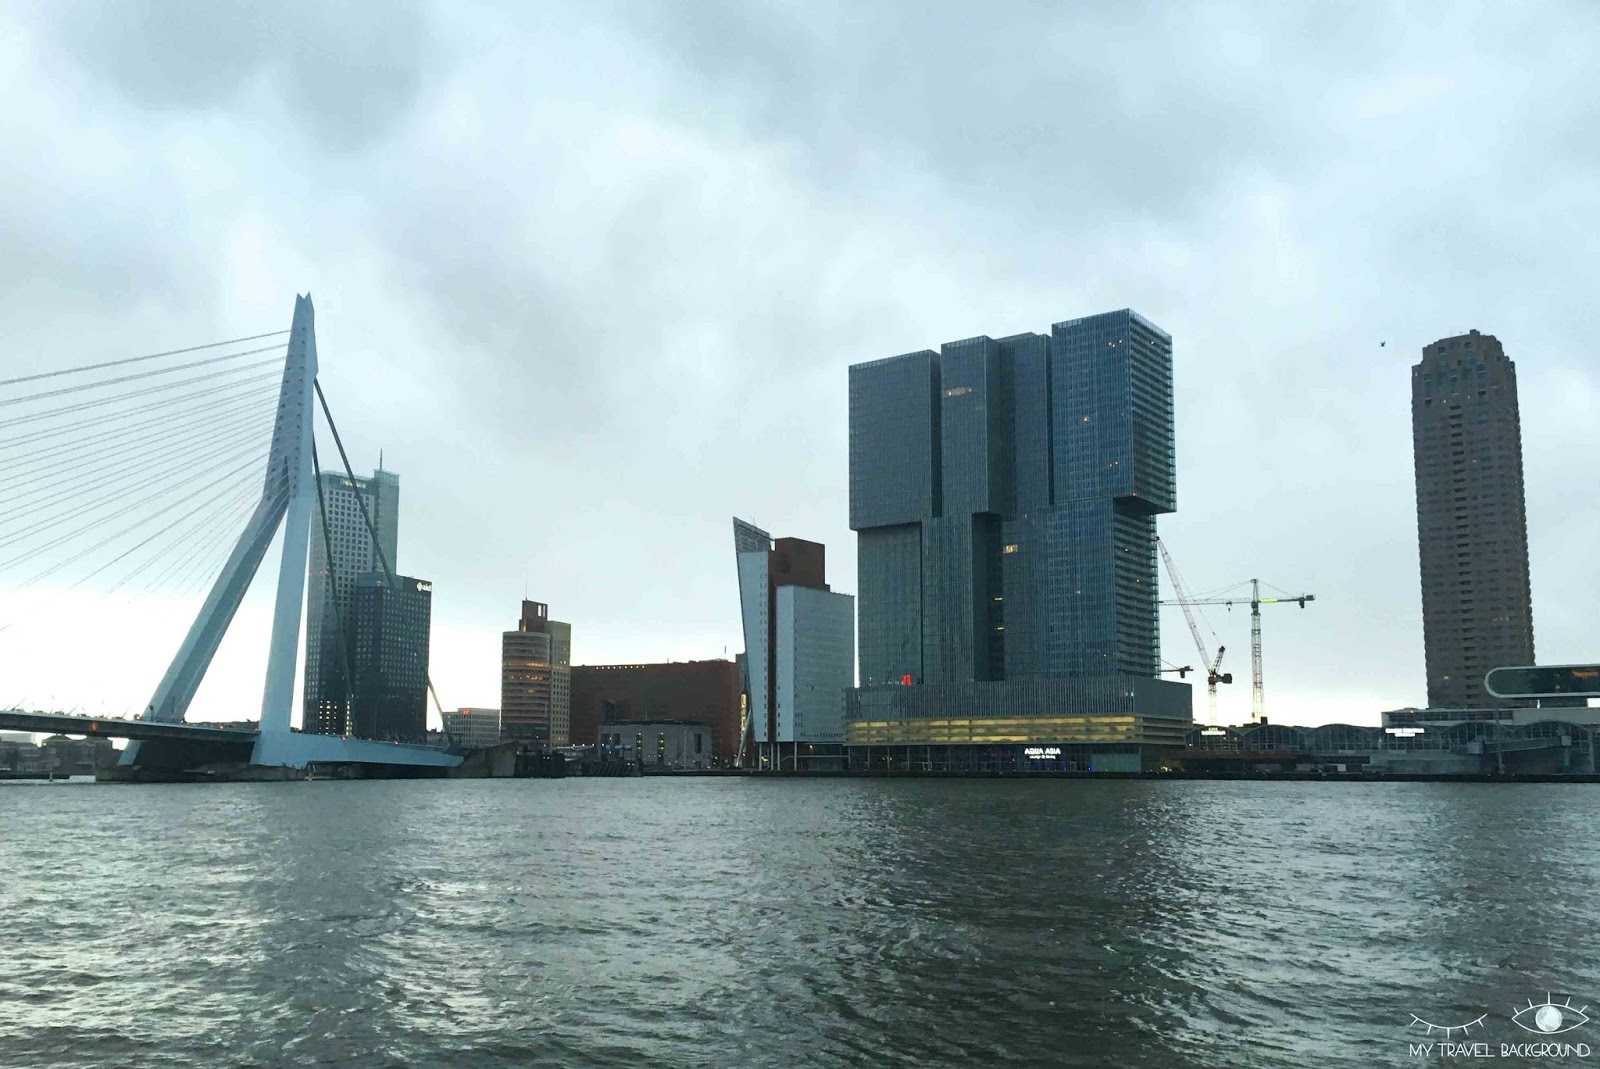 My Travel Background : pourquoi je suis tombée amoureuse de Rotterdam - La Nouvelle Meuse